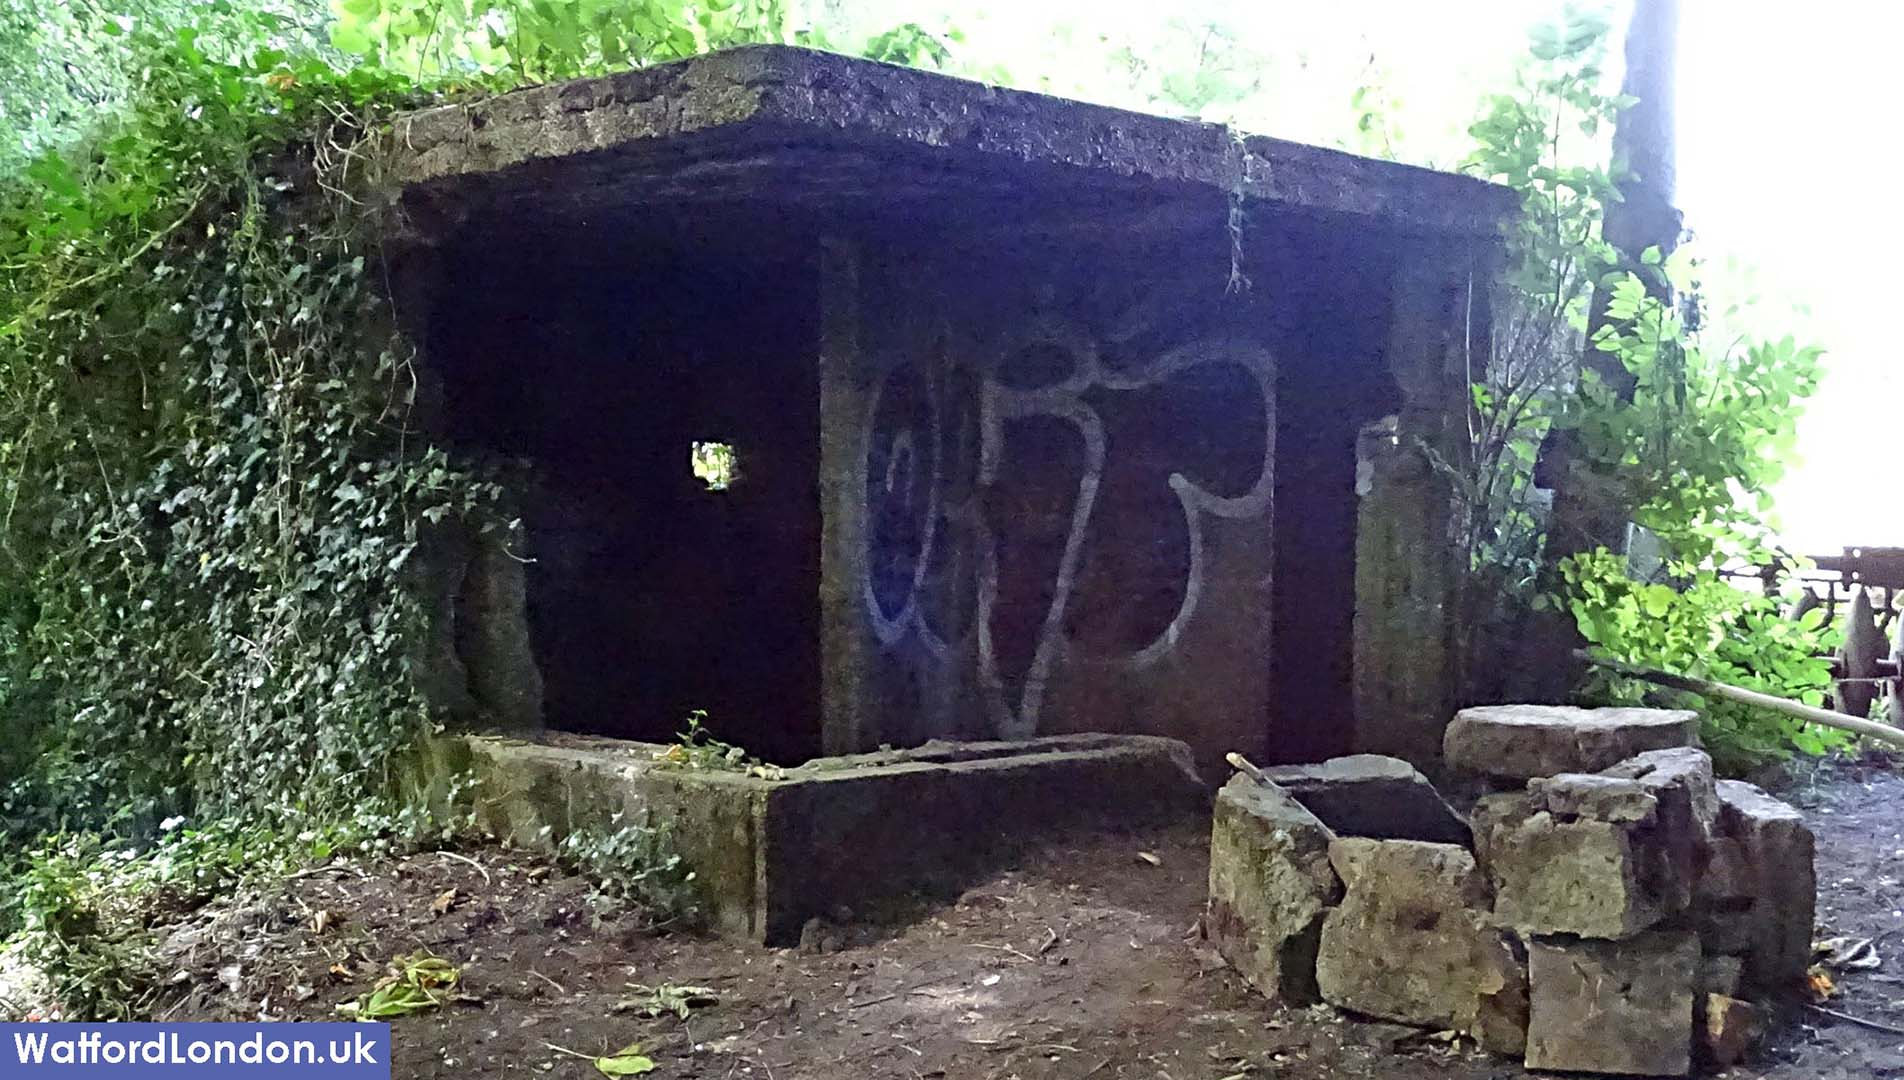 Old War shelter being used as Rural Drug Den at historic hospital cemetery